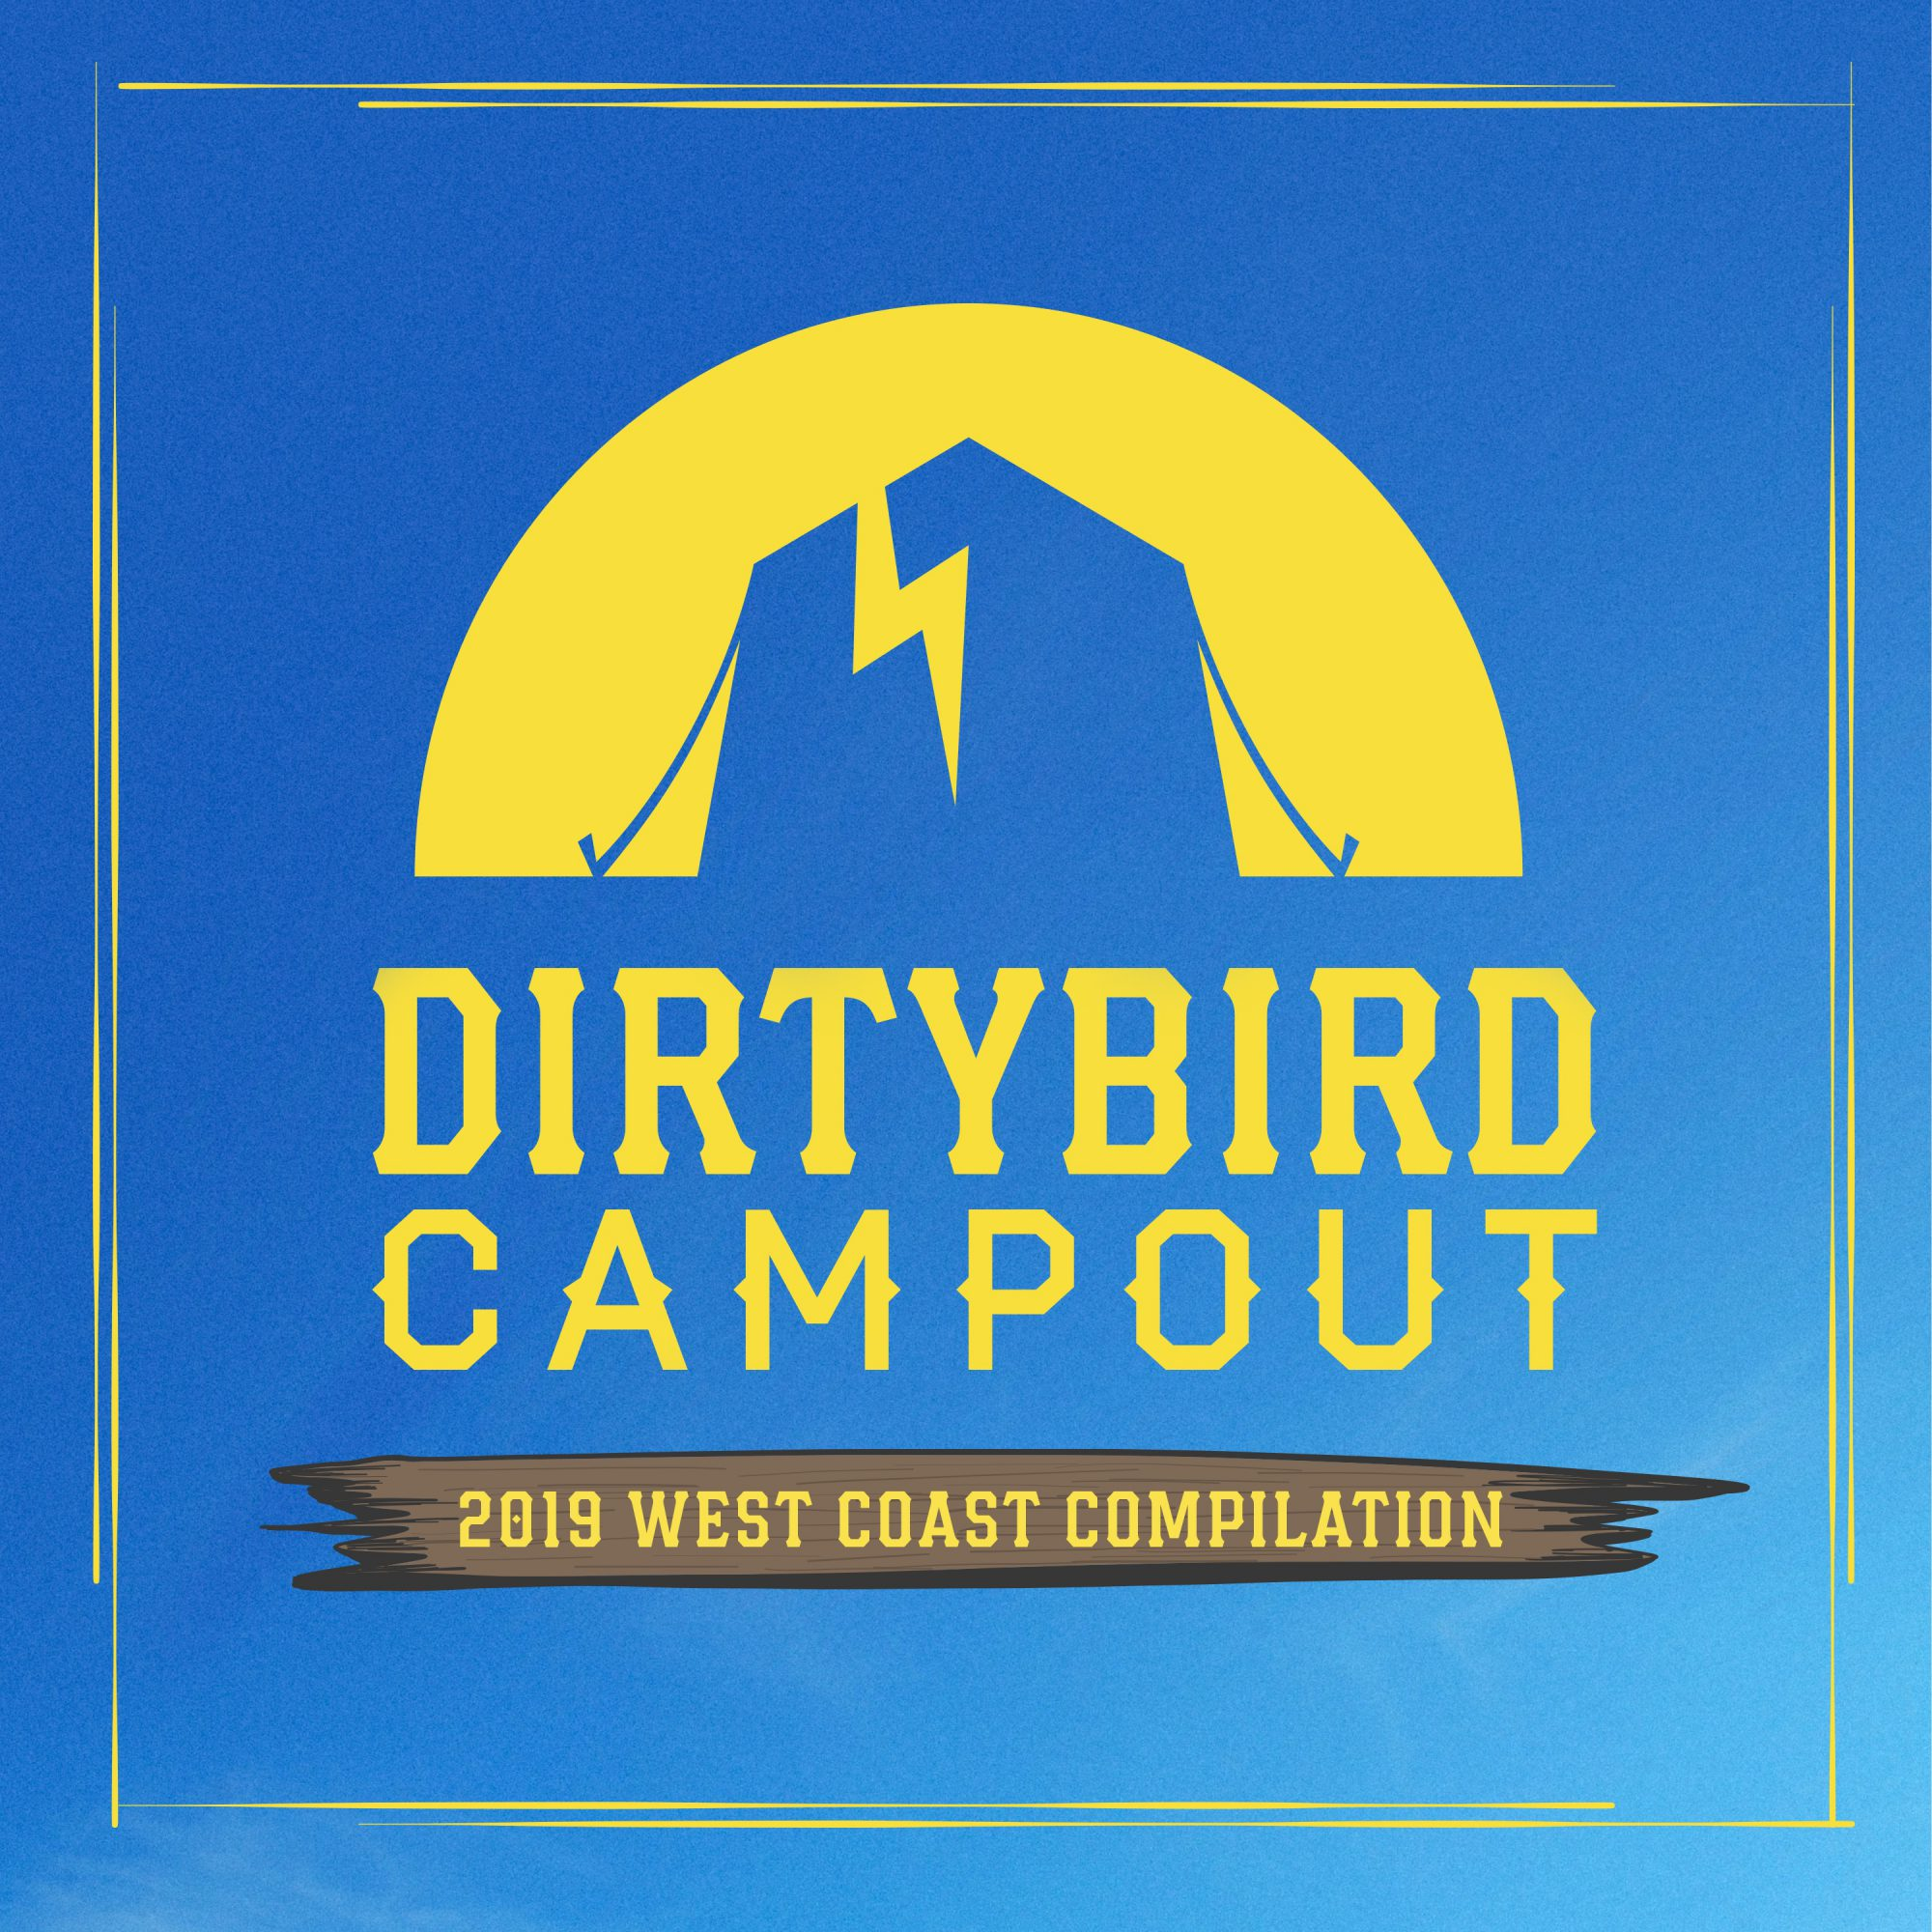 Dirtybird Campout West Coast 2019 Compilation